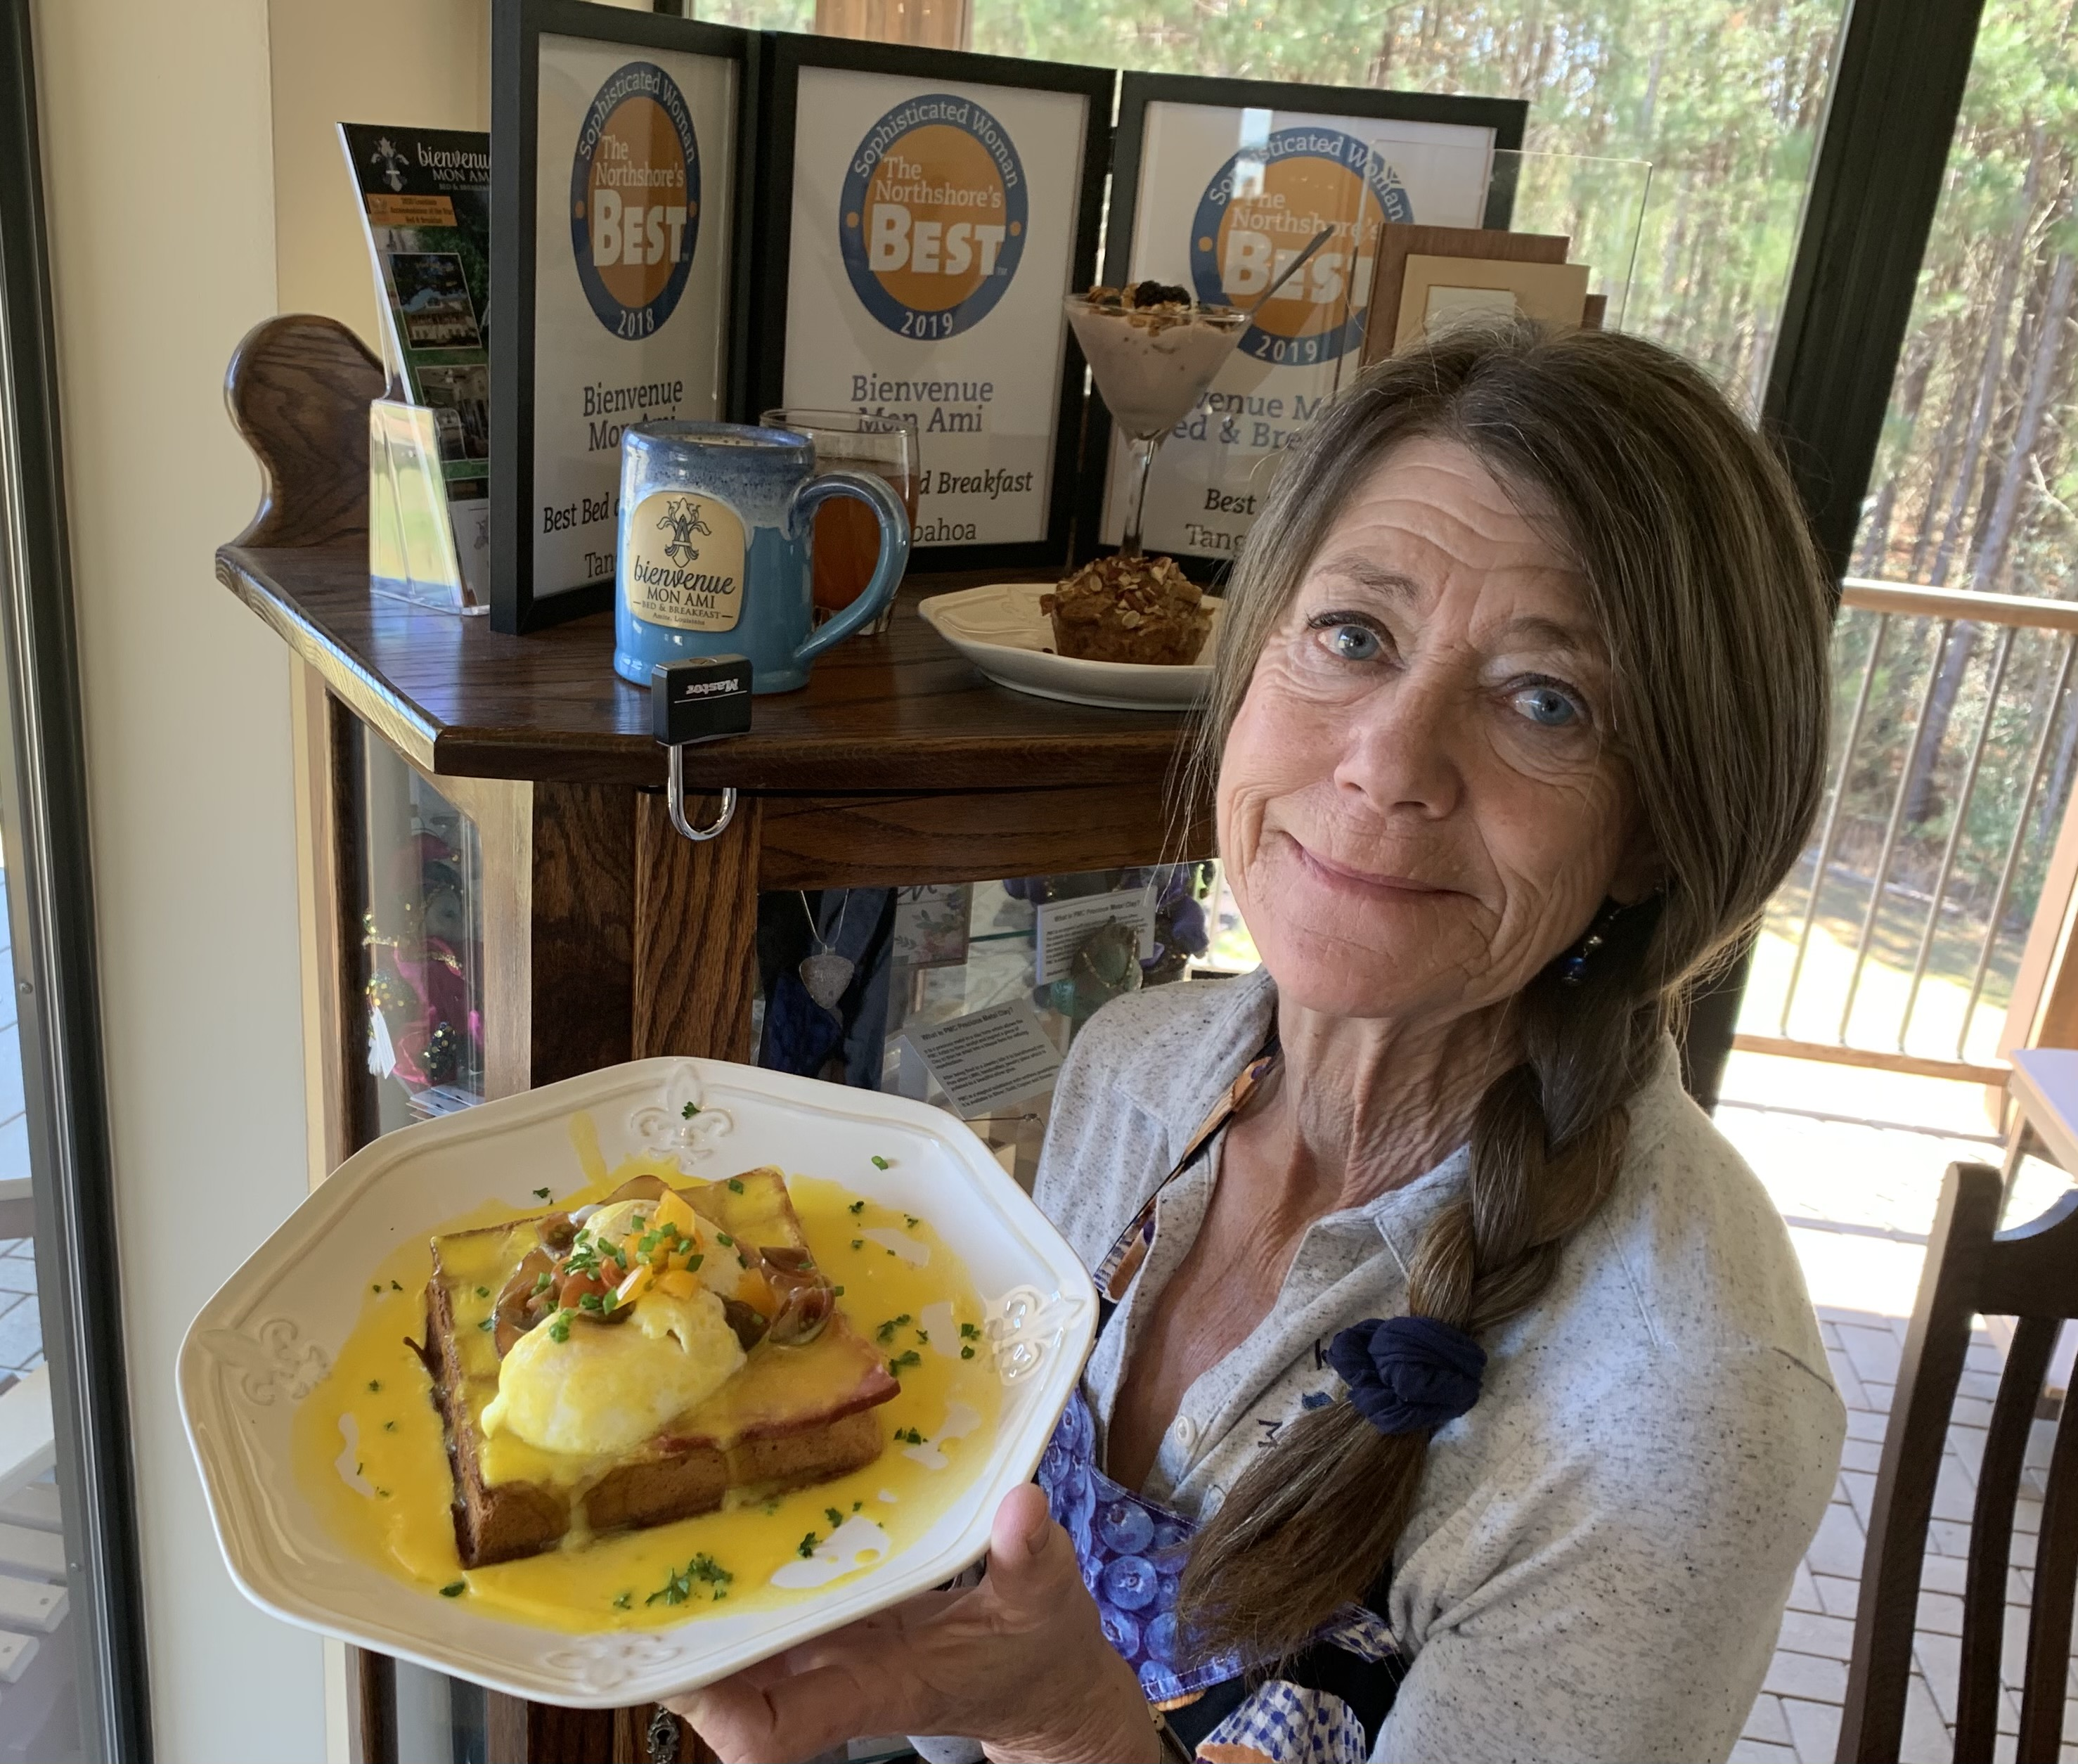 Best of Northshore CHEF; Experience Chef Laura's Gourmet Cuisine